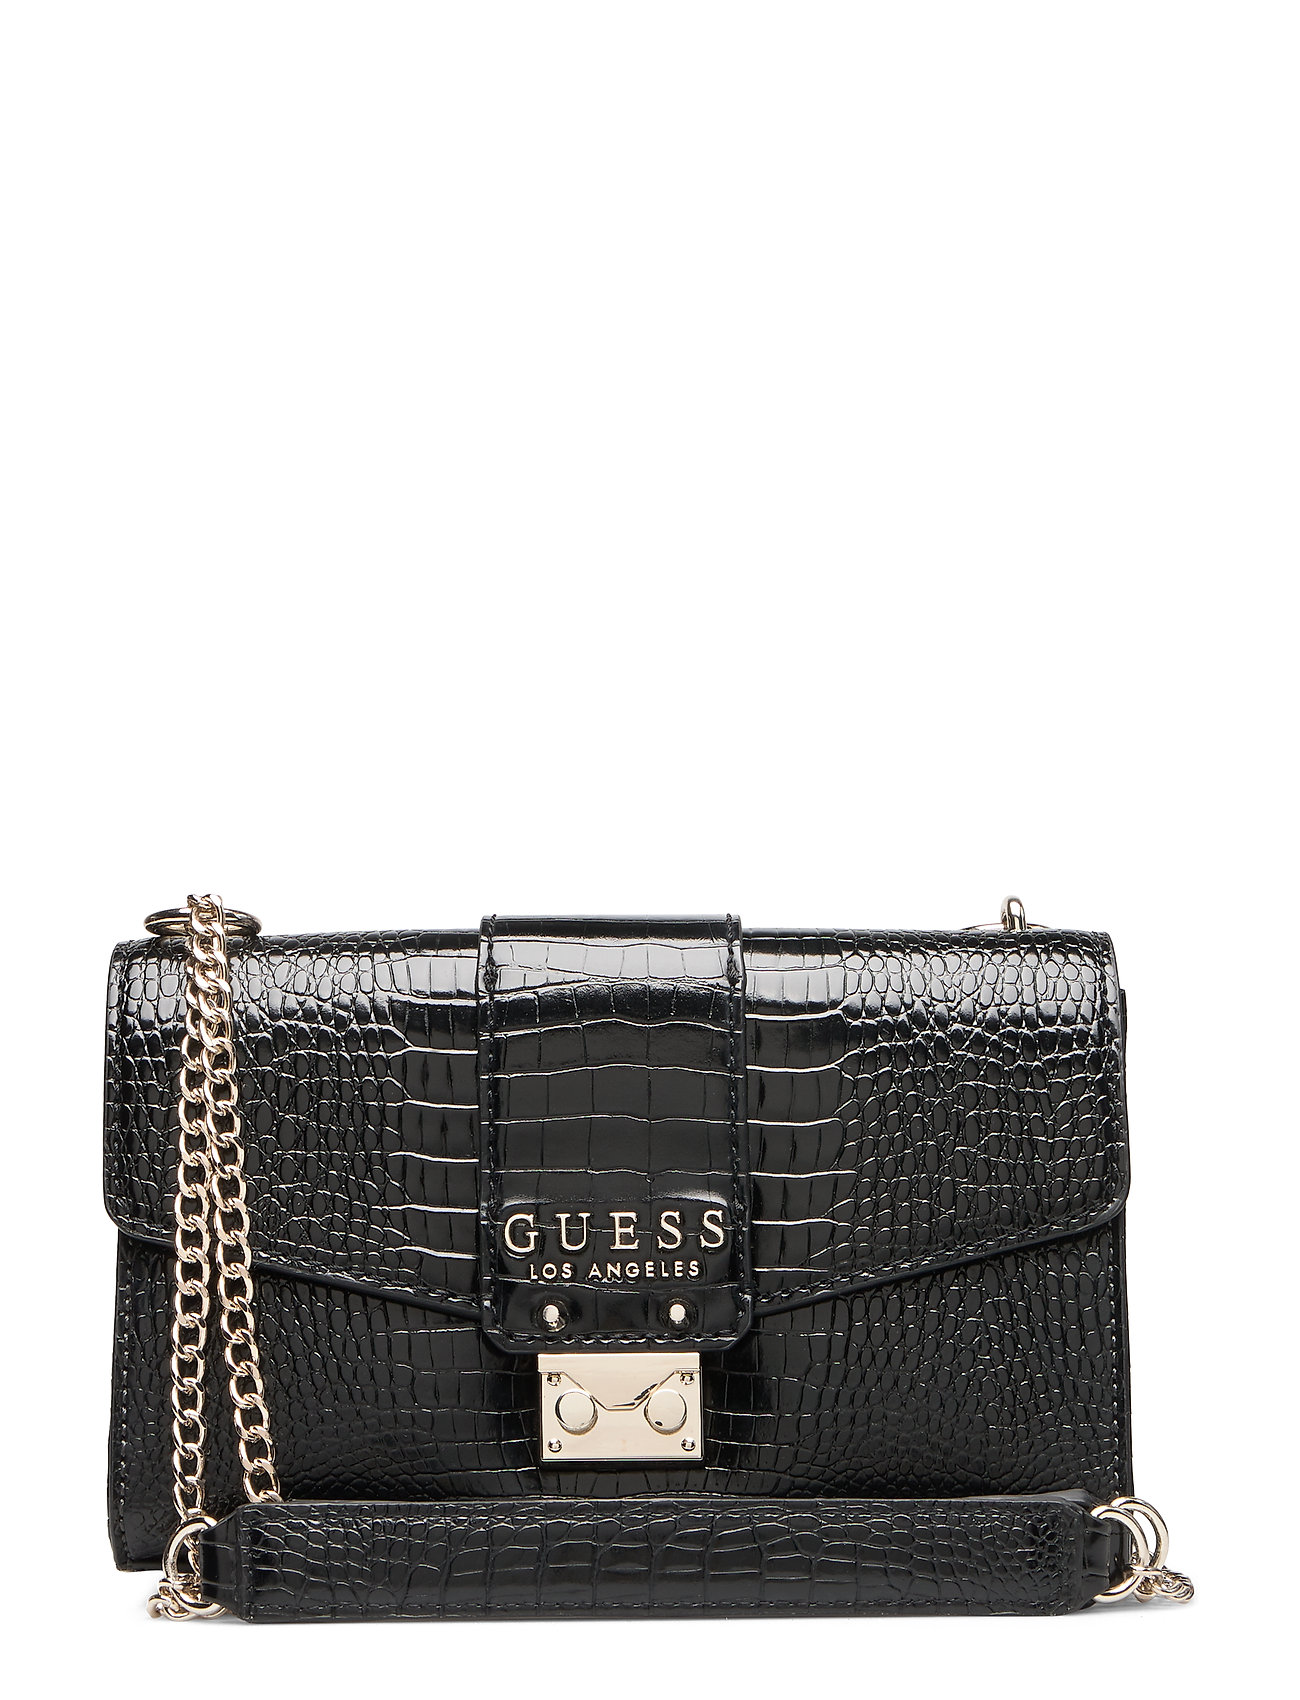 GUESS CLEO CONVERTIBLE XBODY FLAP - BLACK